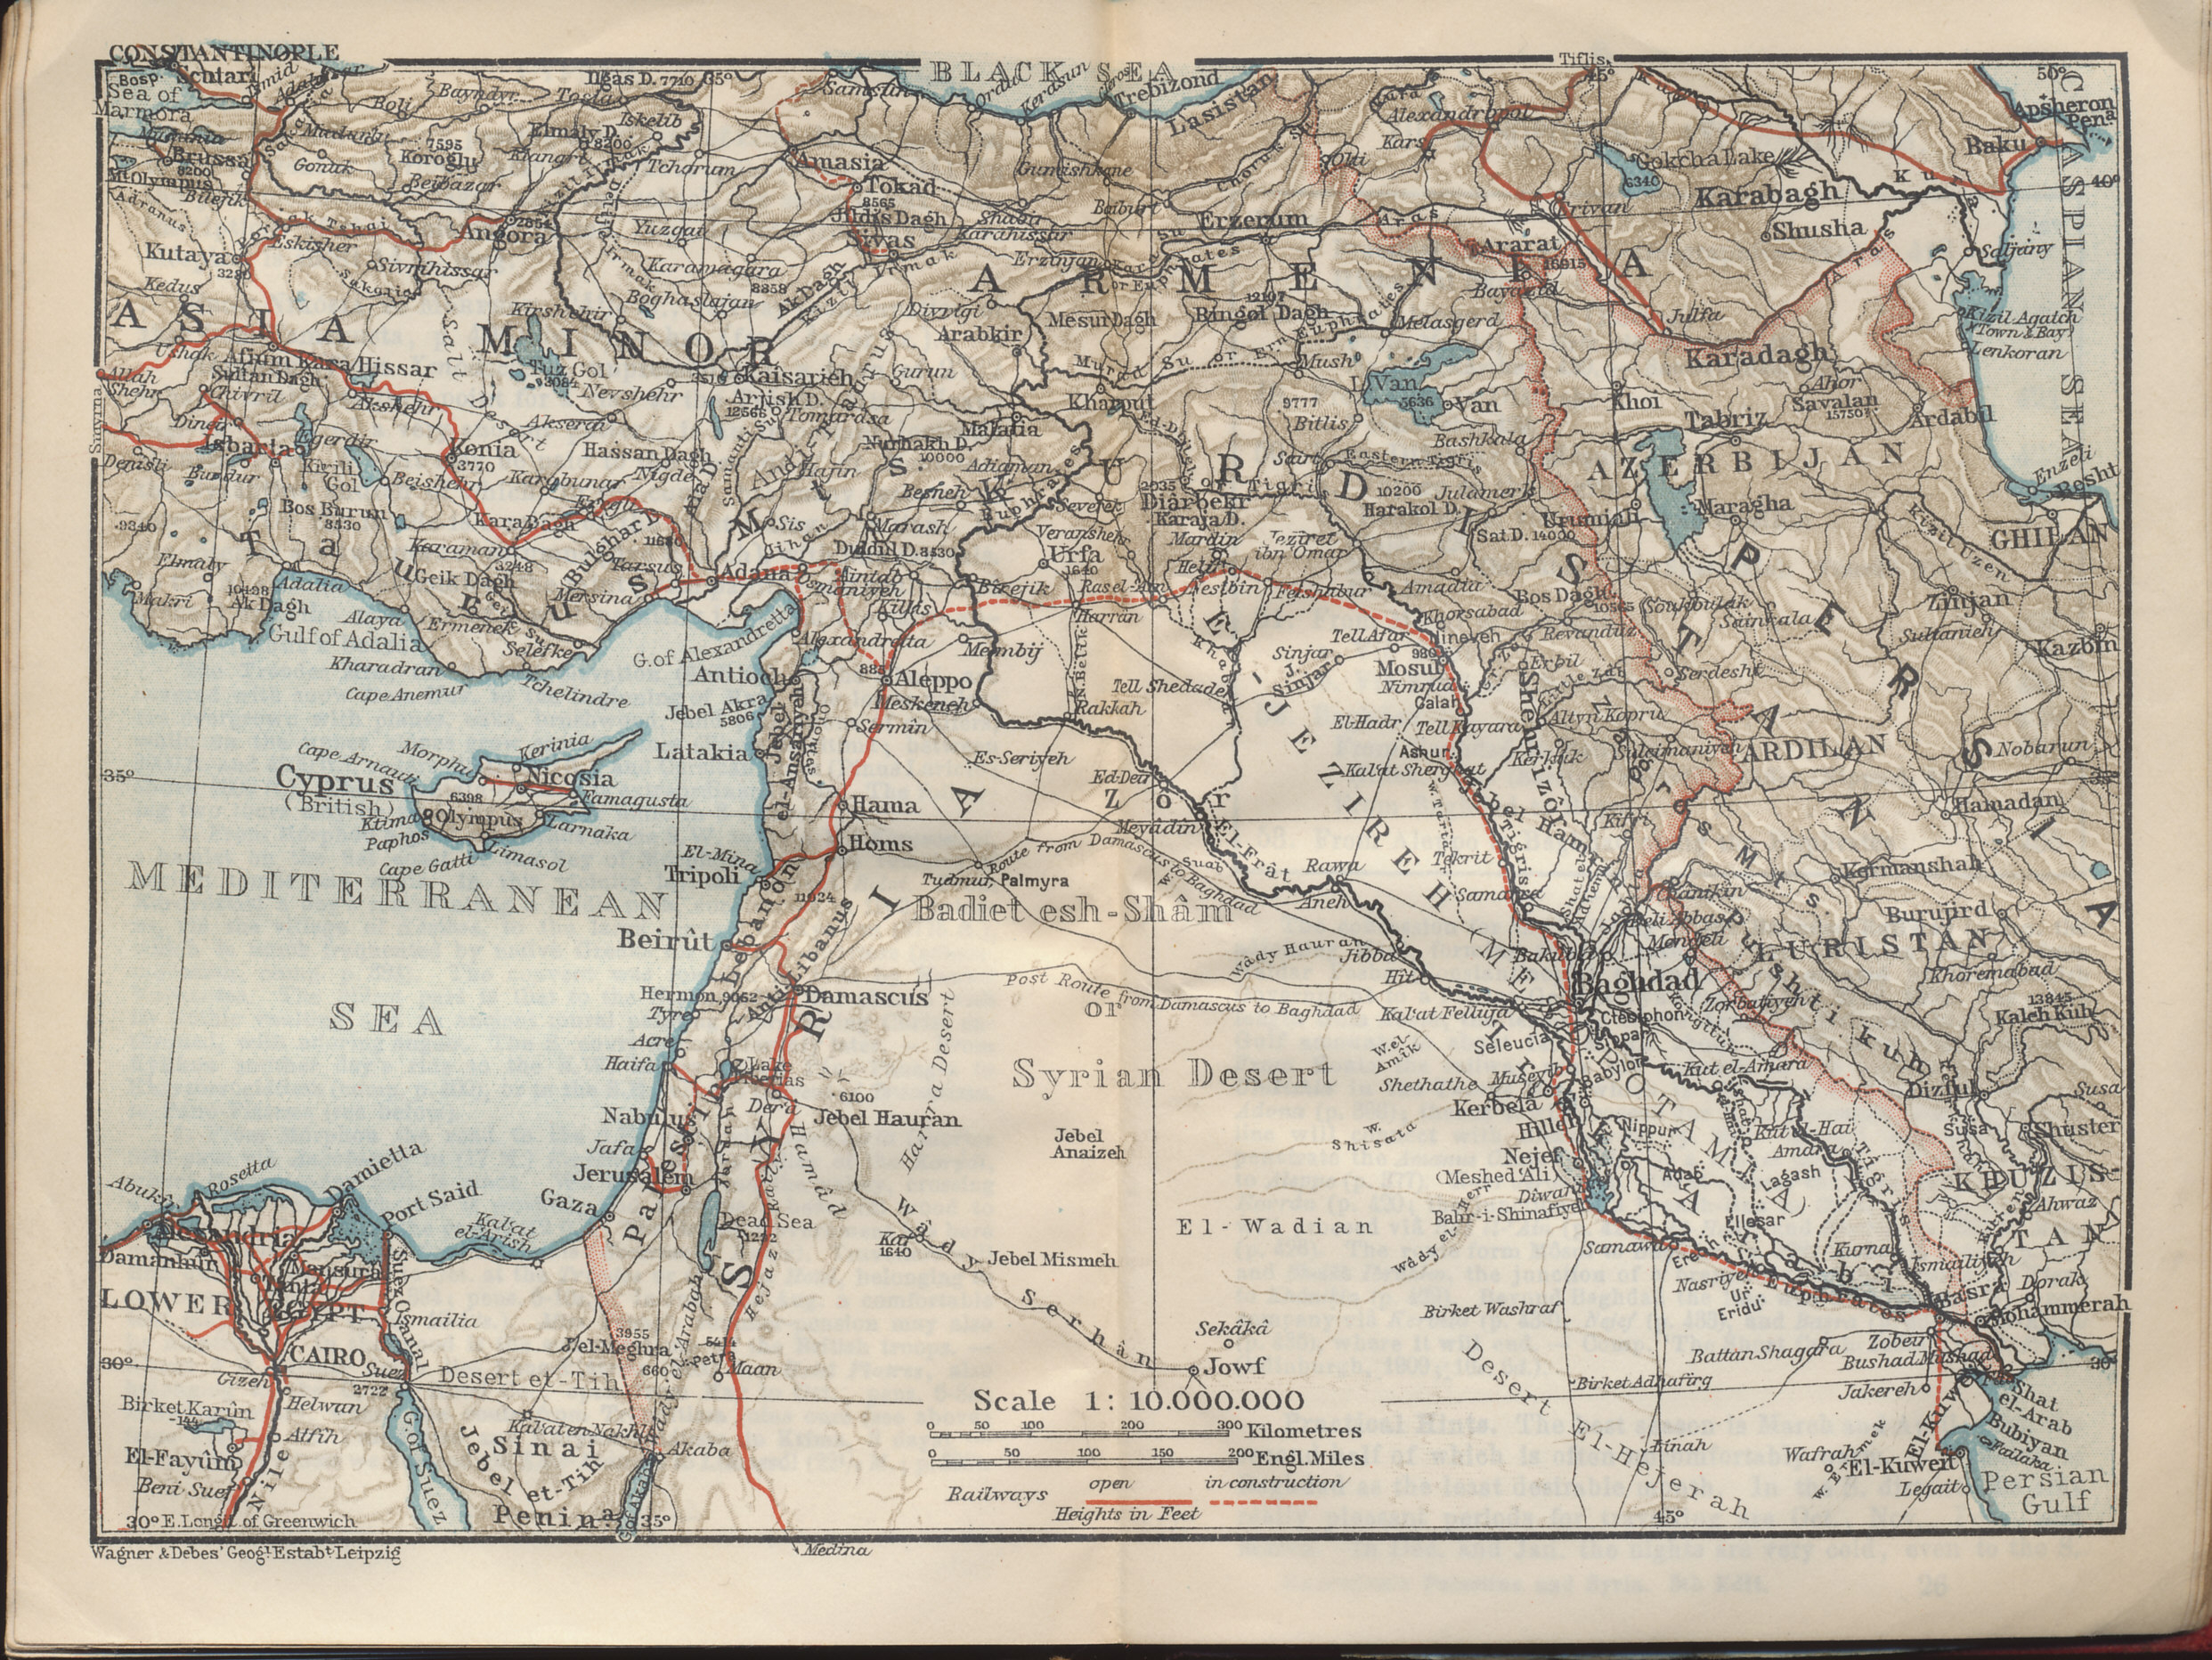 Palestine and syria with routes through mesopotamia and babylonia map of syria palestine and turkey from the baedeker 1912 travel guide palestine and gumiabroncs Image collections